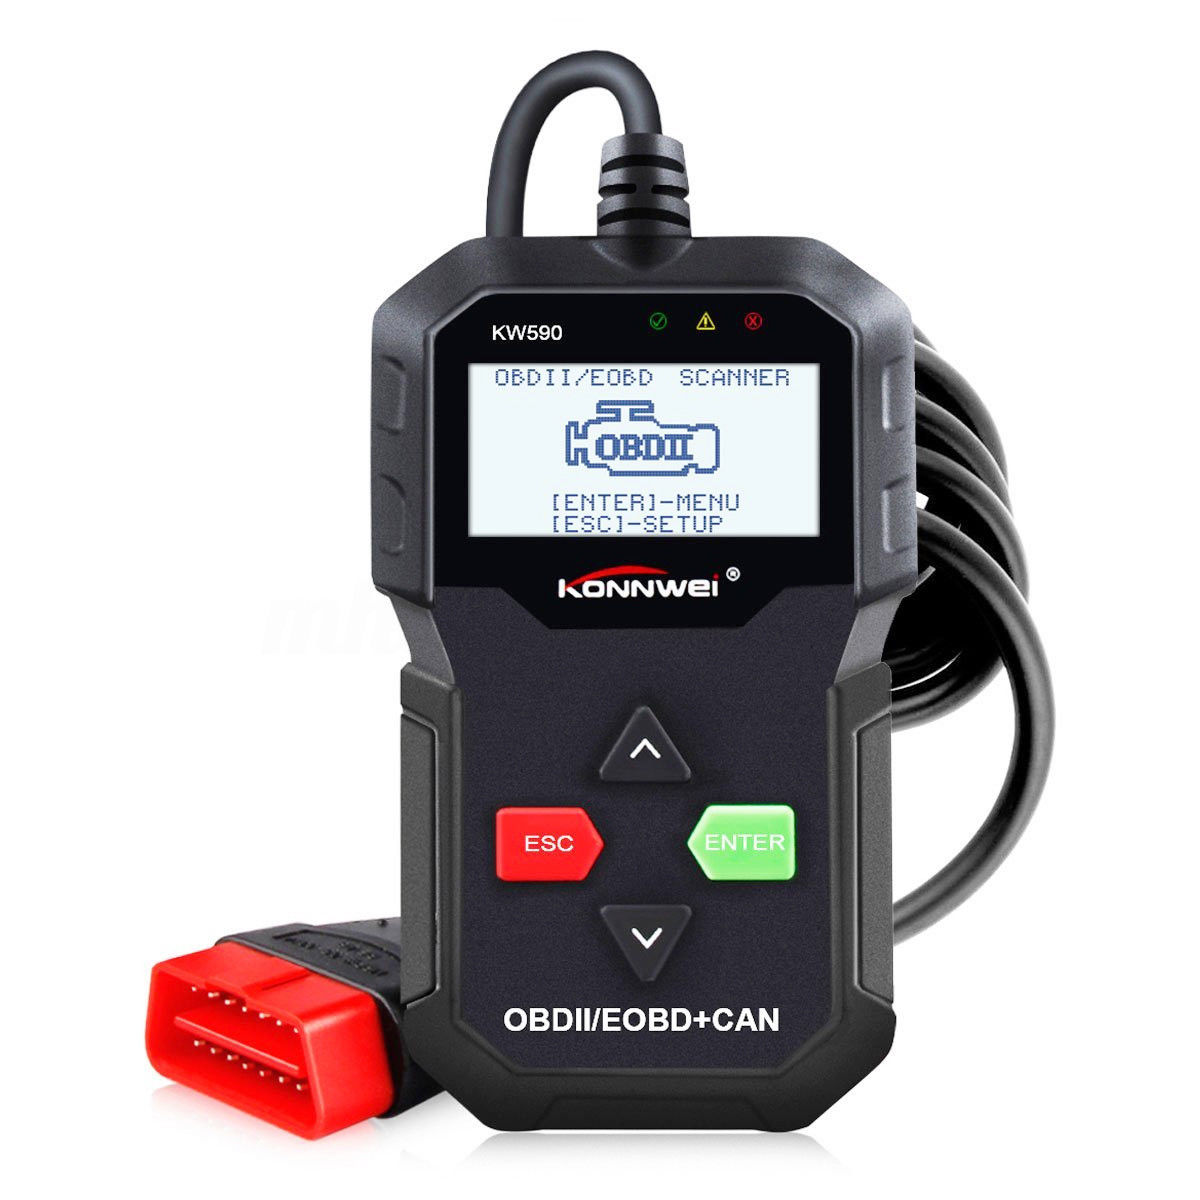 KW590 OBDII OBD2 EOBD Auto Car Engine Scanner Code Reader